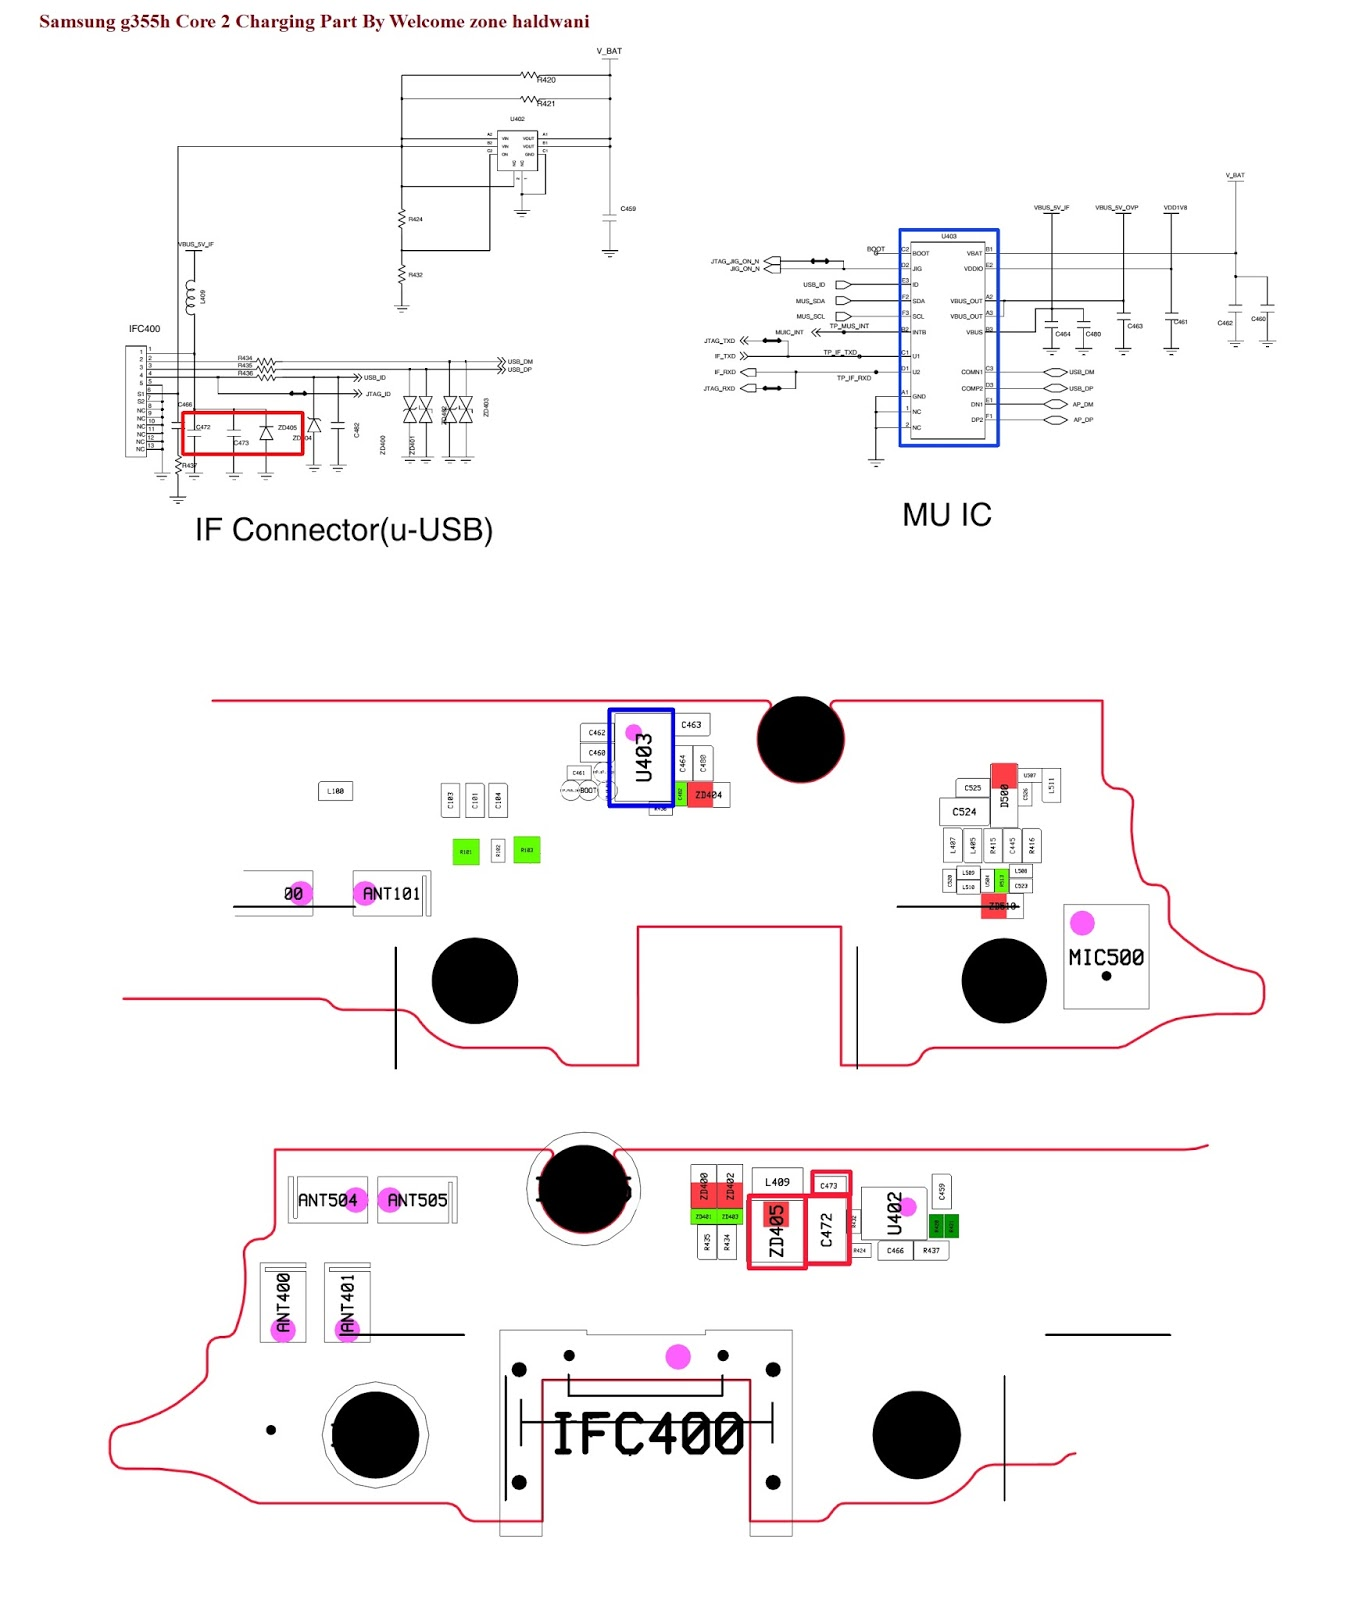 moto g schematics the wiring diagram samsung galaxy y schematics vidim wiring diagram schematic